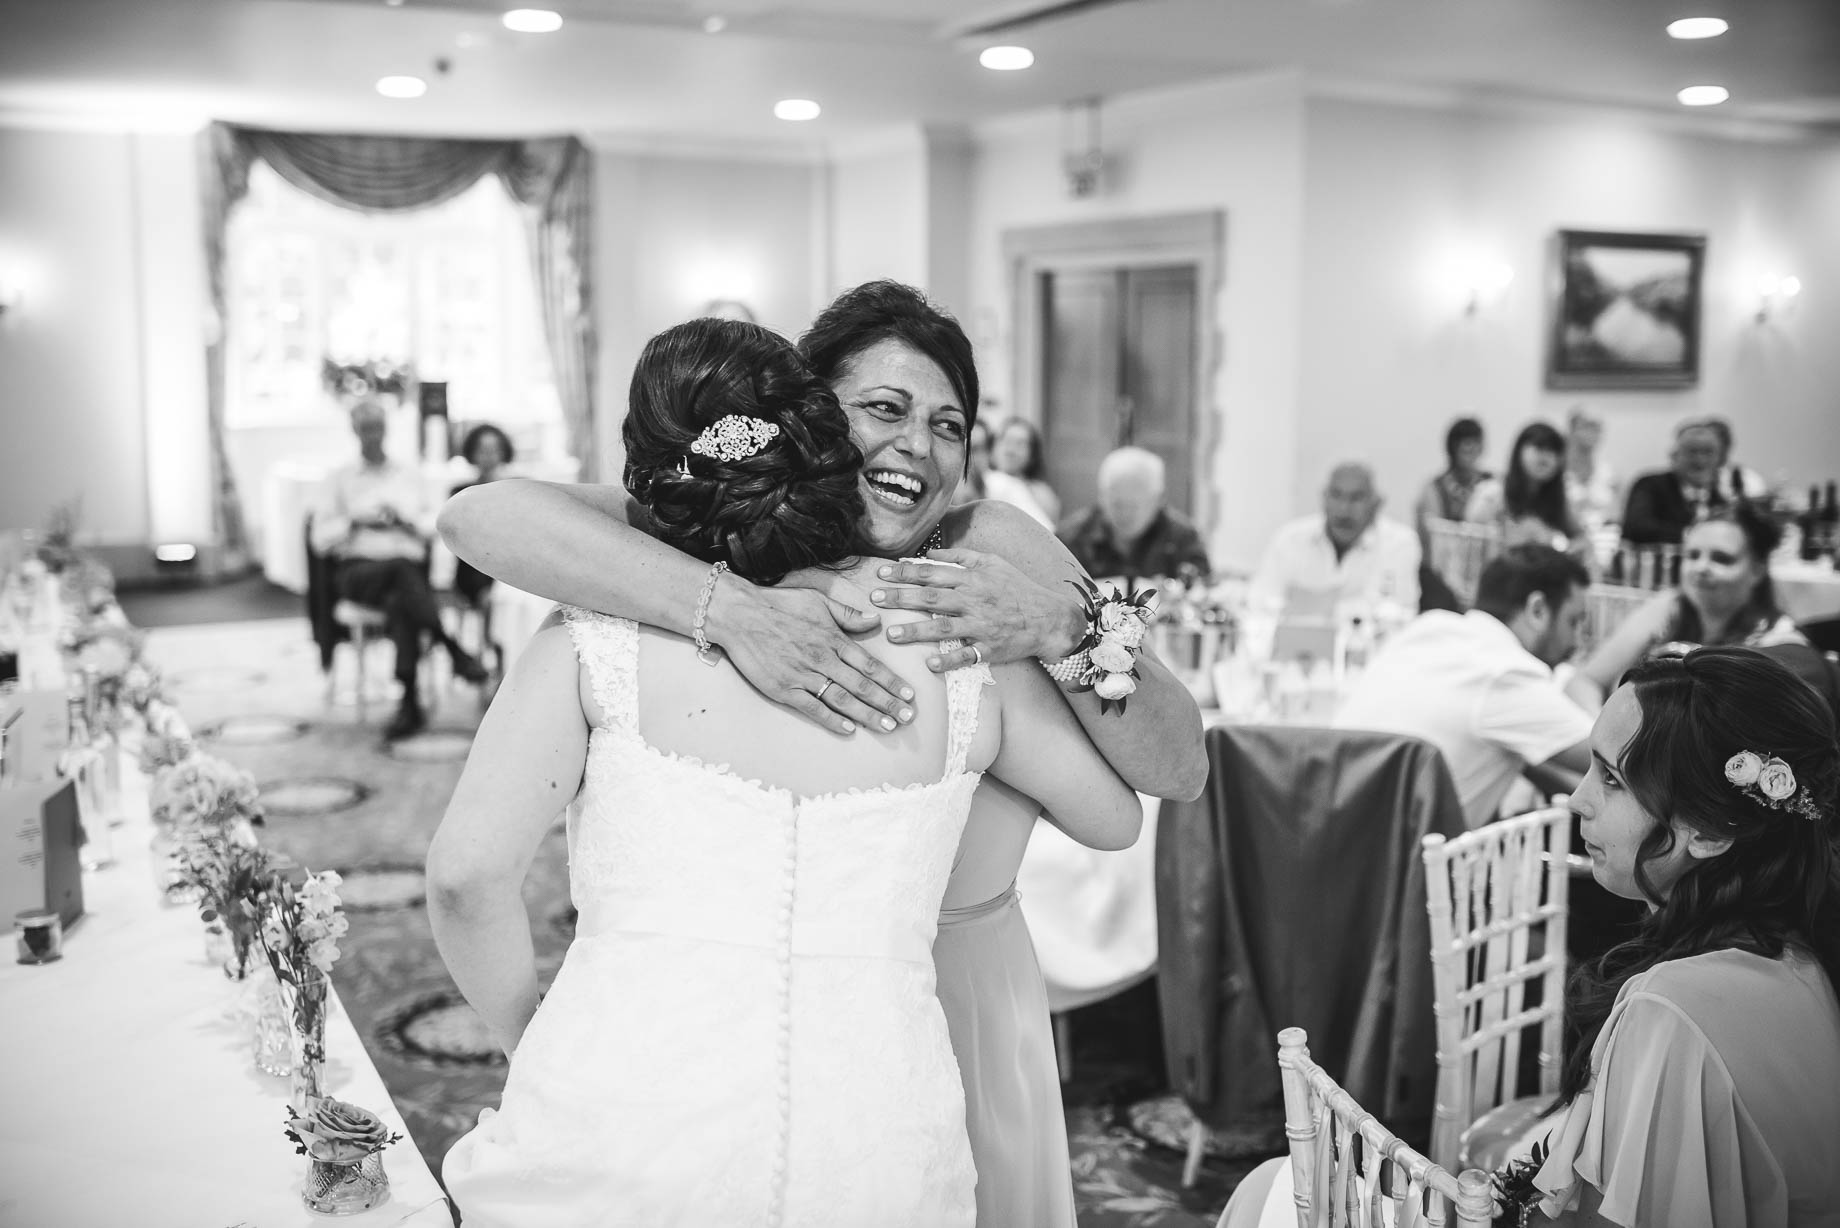 Luton Hoo wedding photography by Guy Collier Photography - Lauren and Gem (146 of 178)